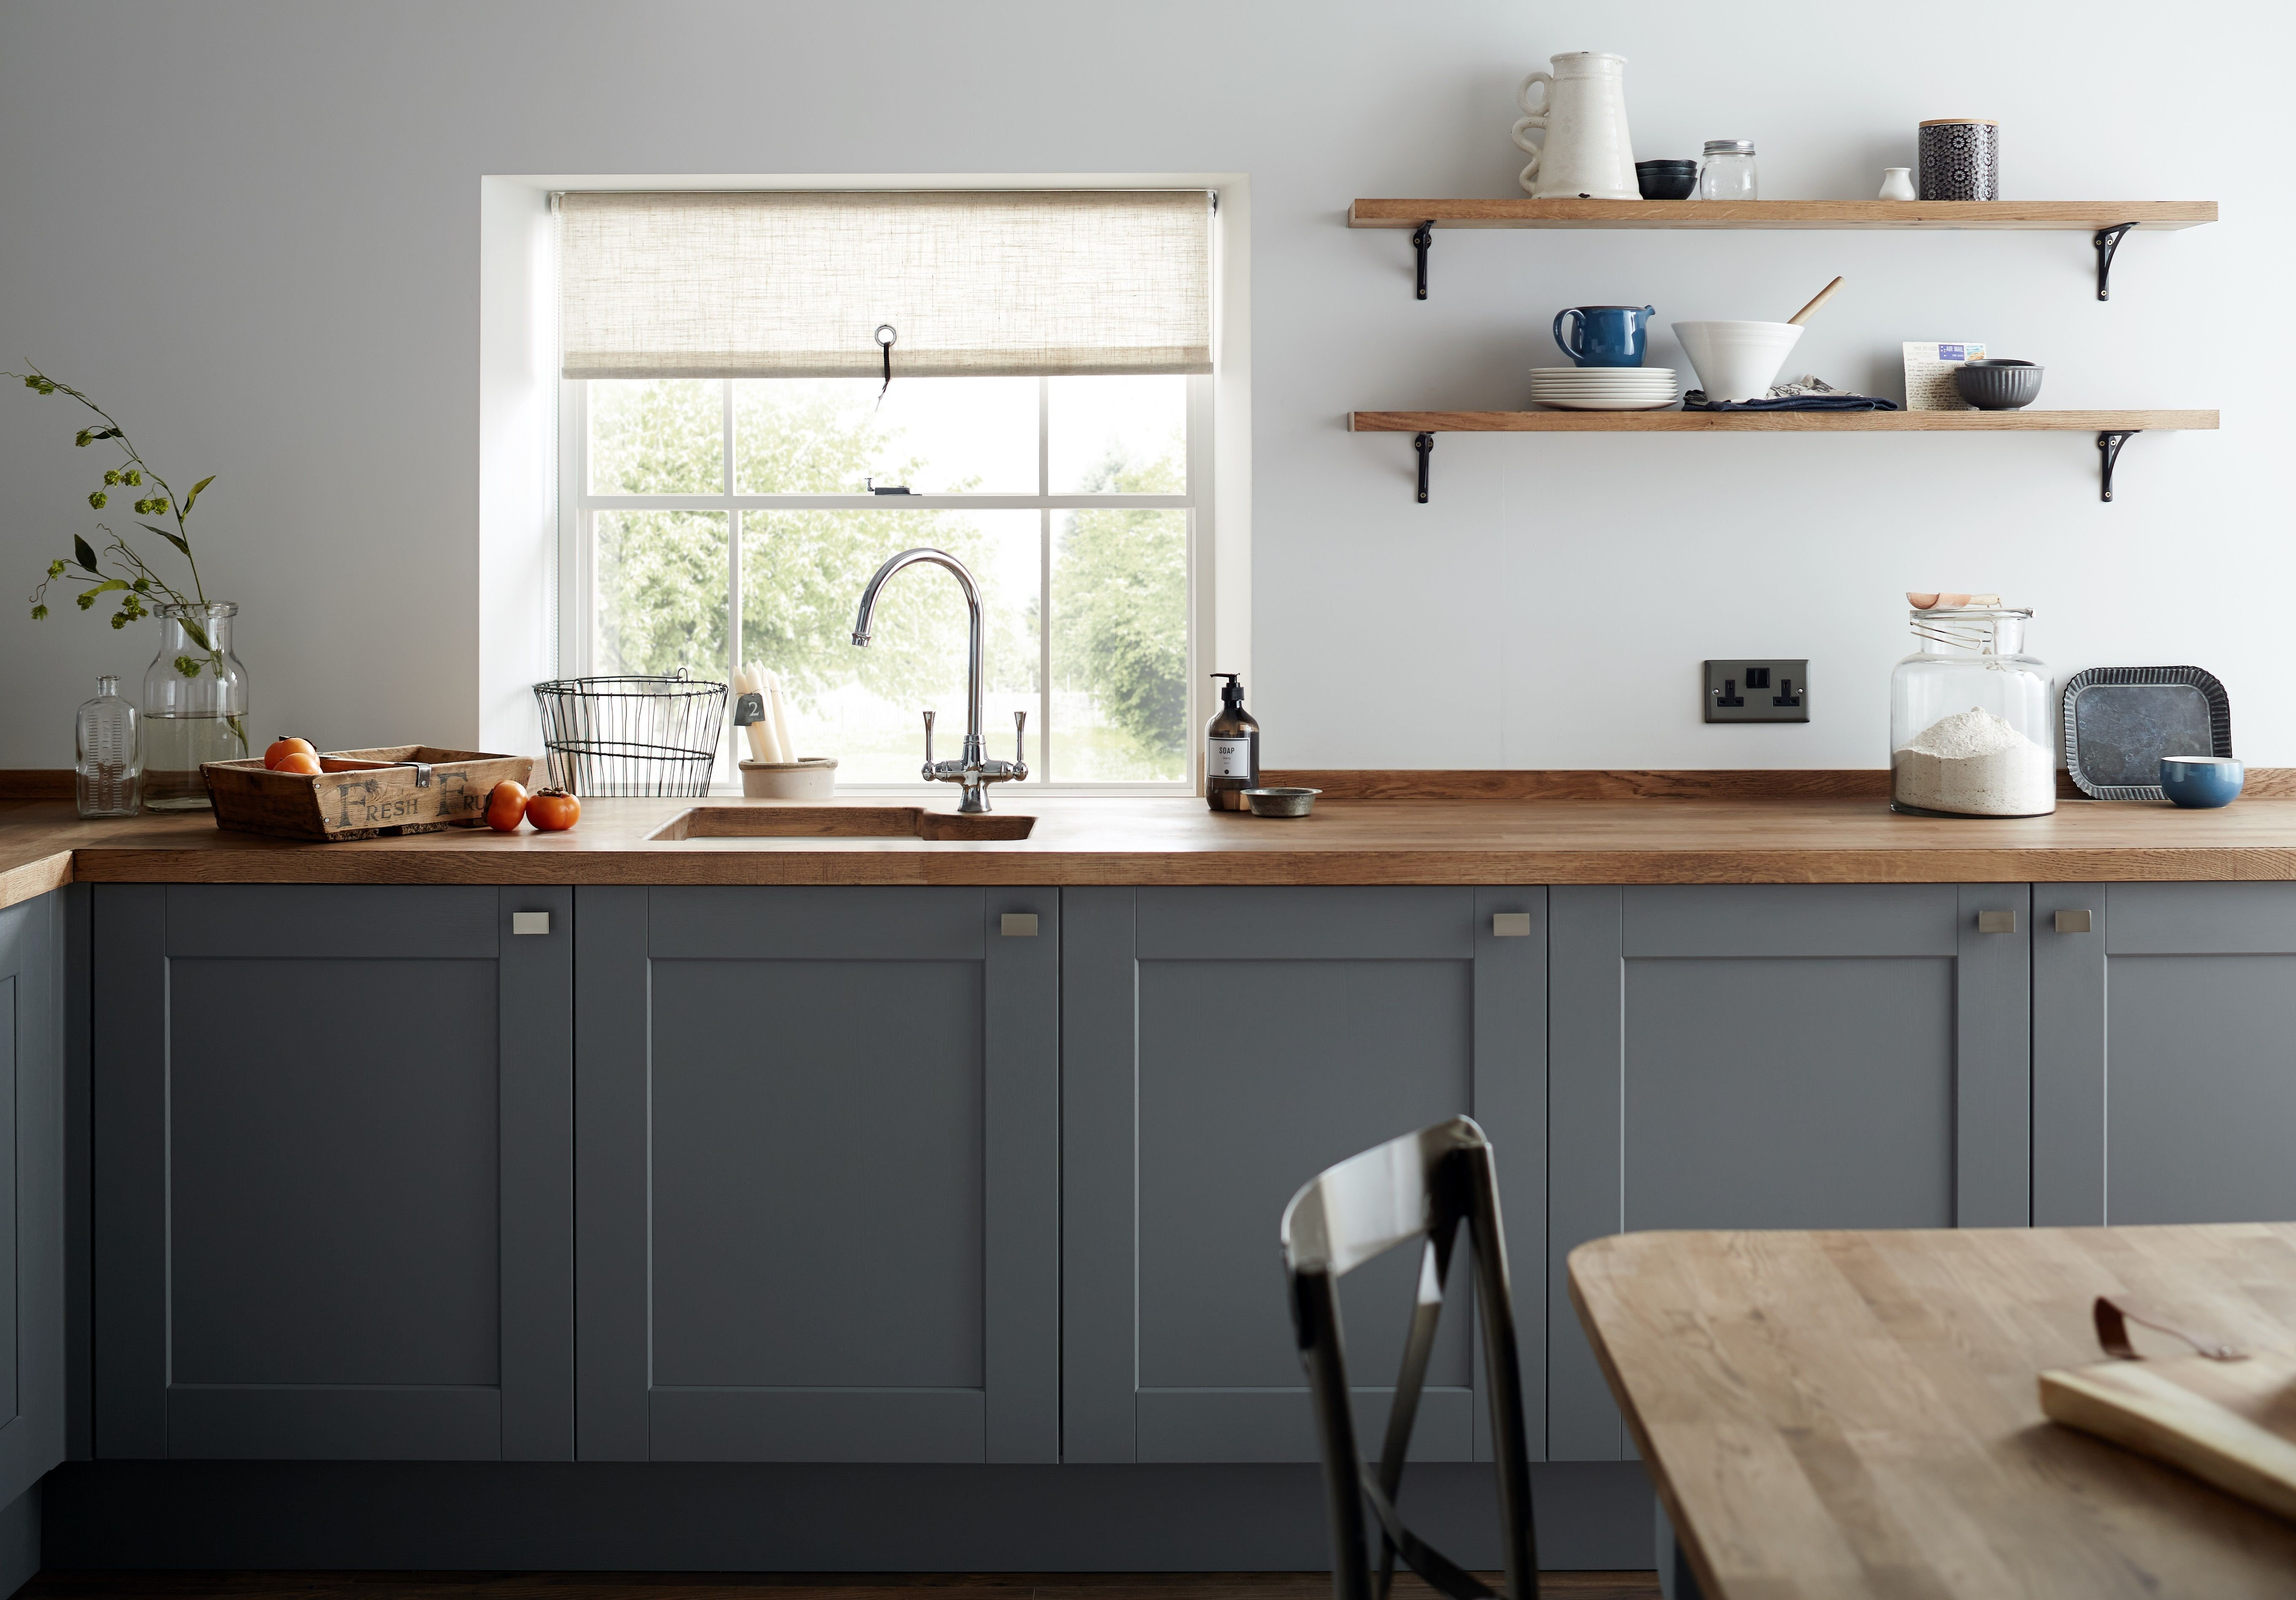 Dark Gray Cabinets A Dark Grey Shaker Style Kitchen Cabinet Door With A Wood